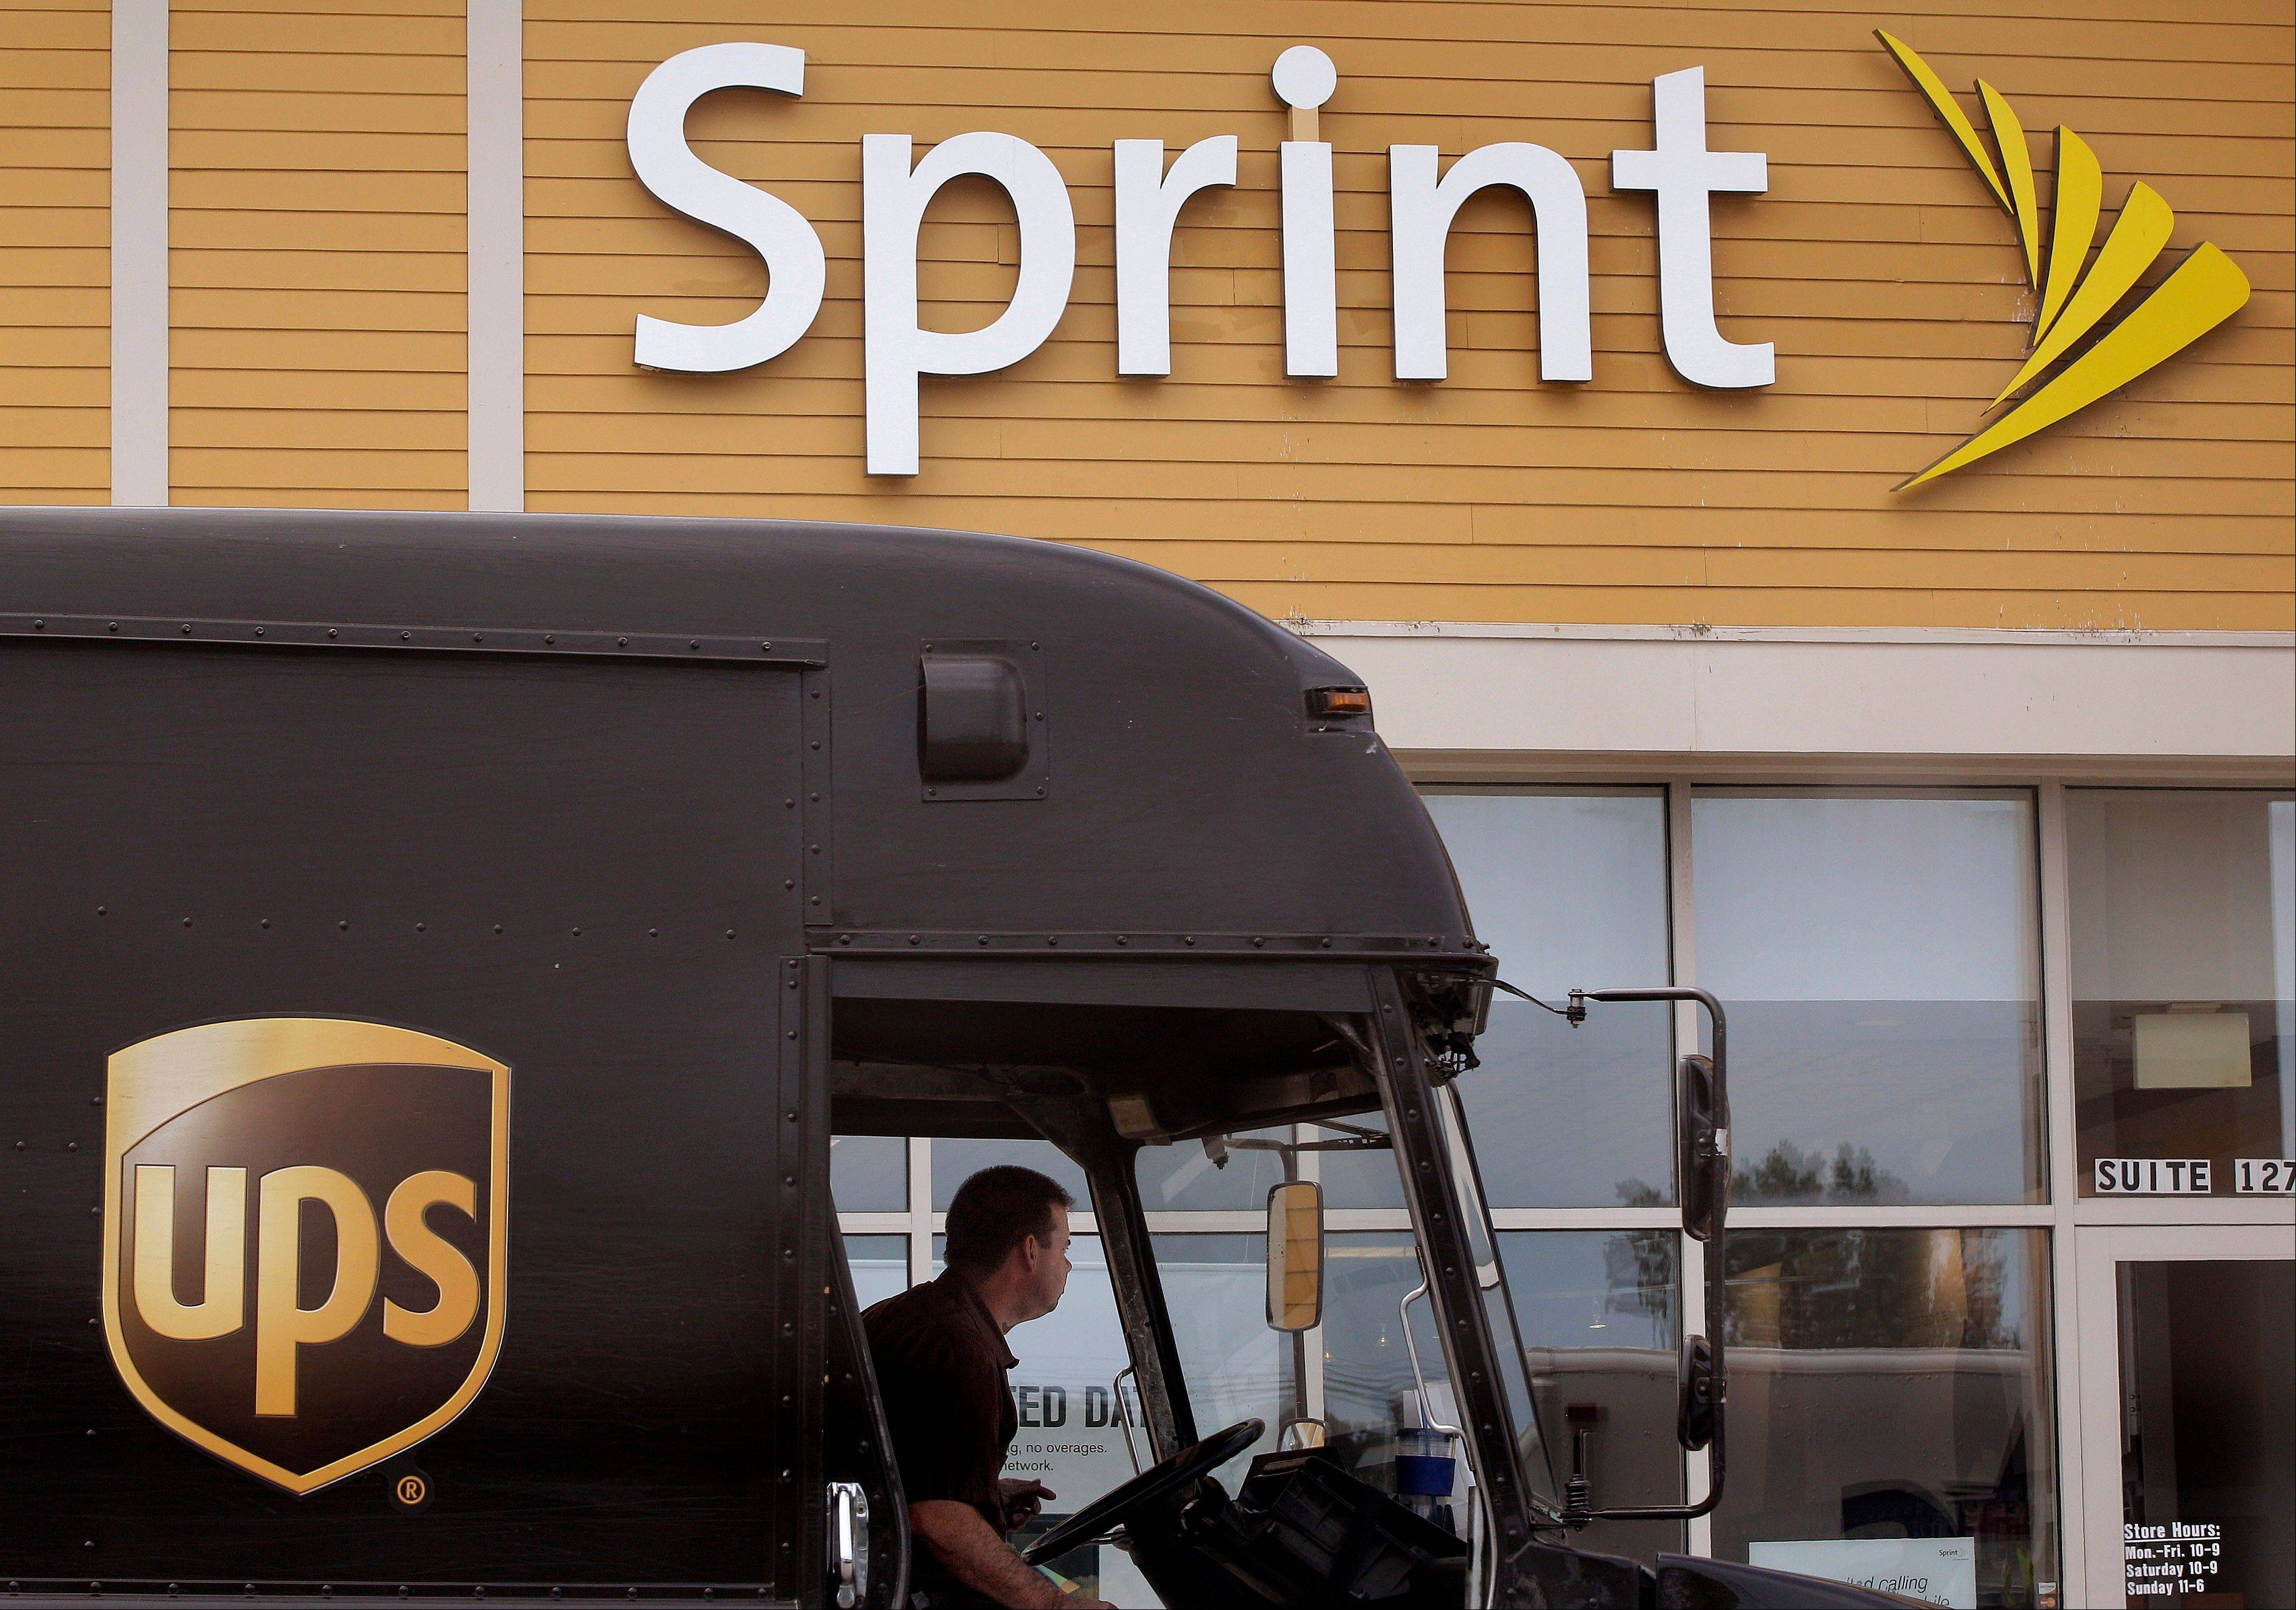 Sprint Nextel Corp., the country's third largest wireless carrier, on Thursday said it lost $1.3 billion in its fourth quarter, about the same as a year ago, as it revamped its network for a comeback versus bigger competitors.